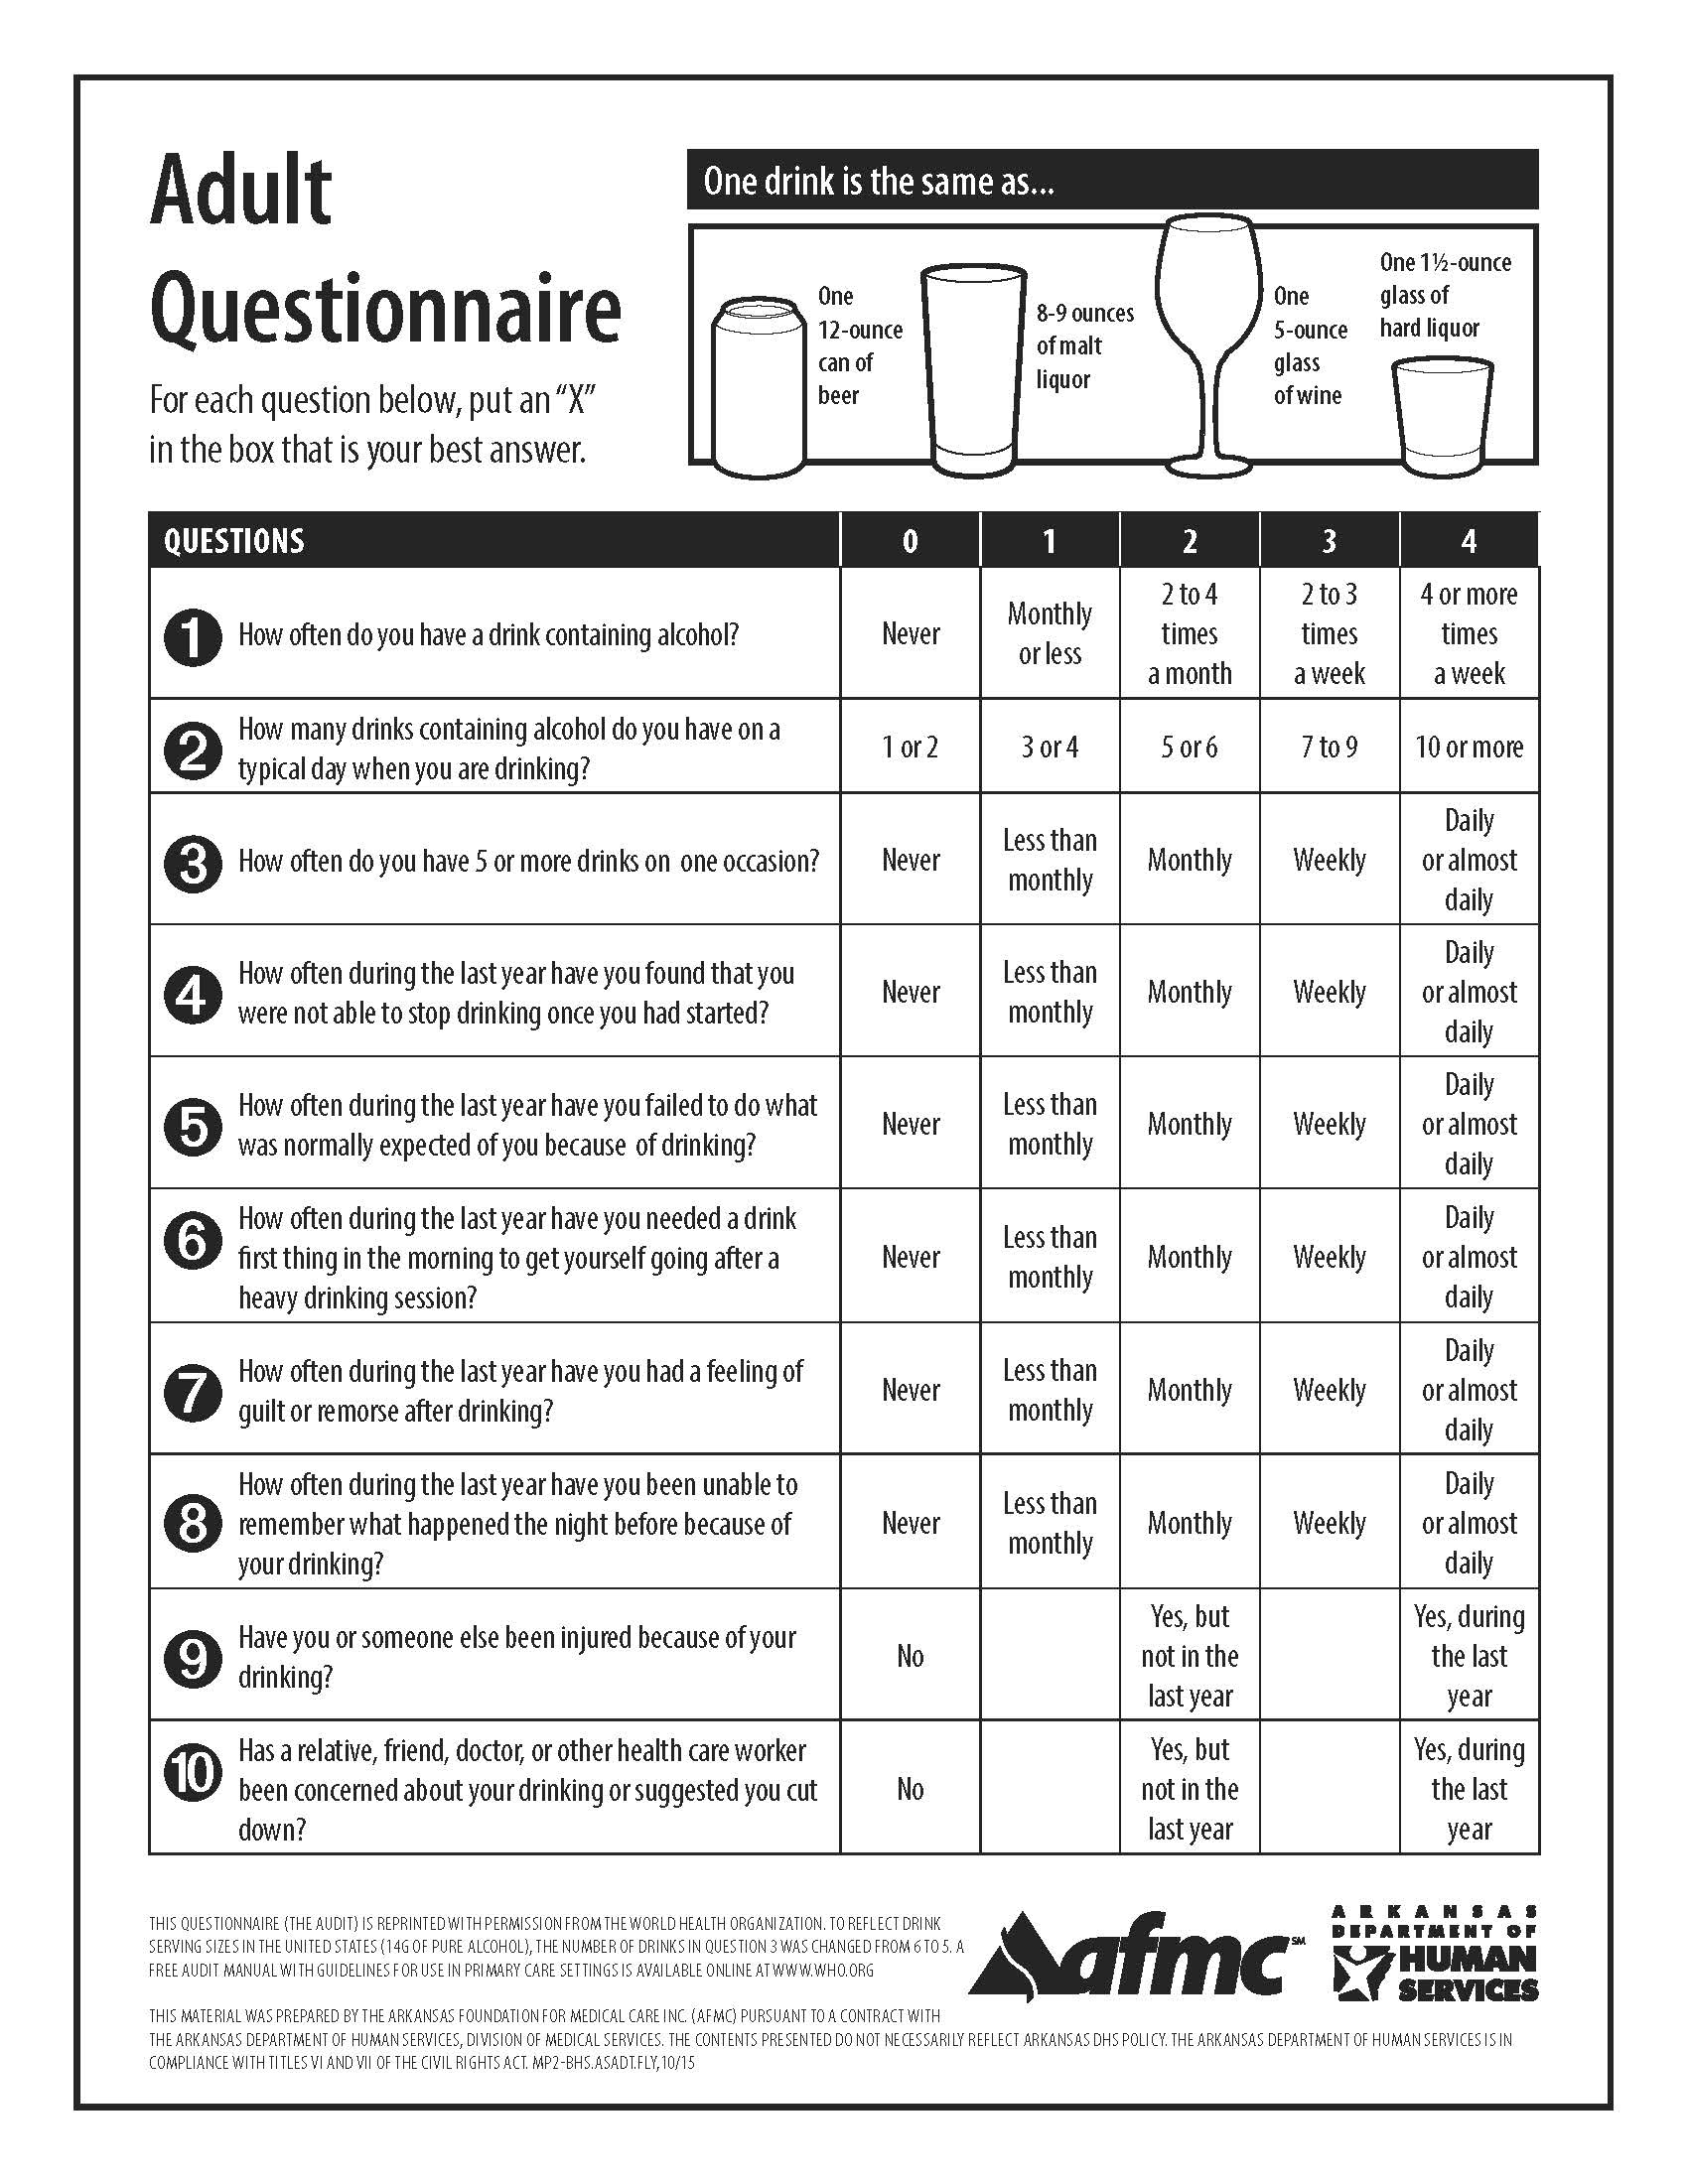 Adult Add Questionaire